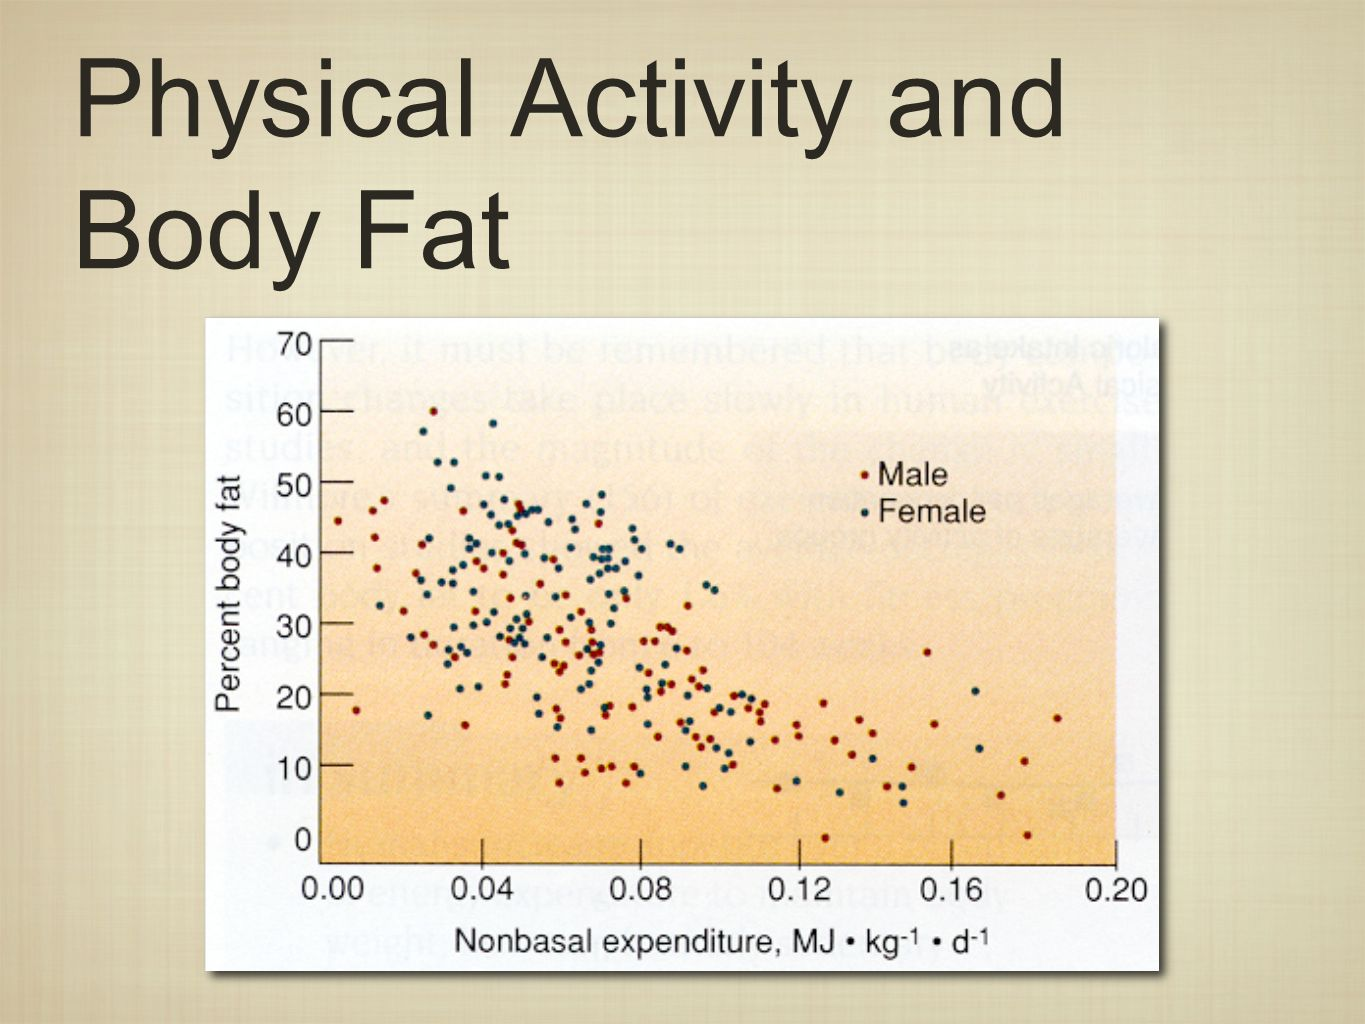 Physical Activity and Body Fat